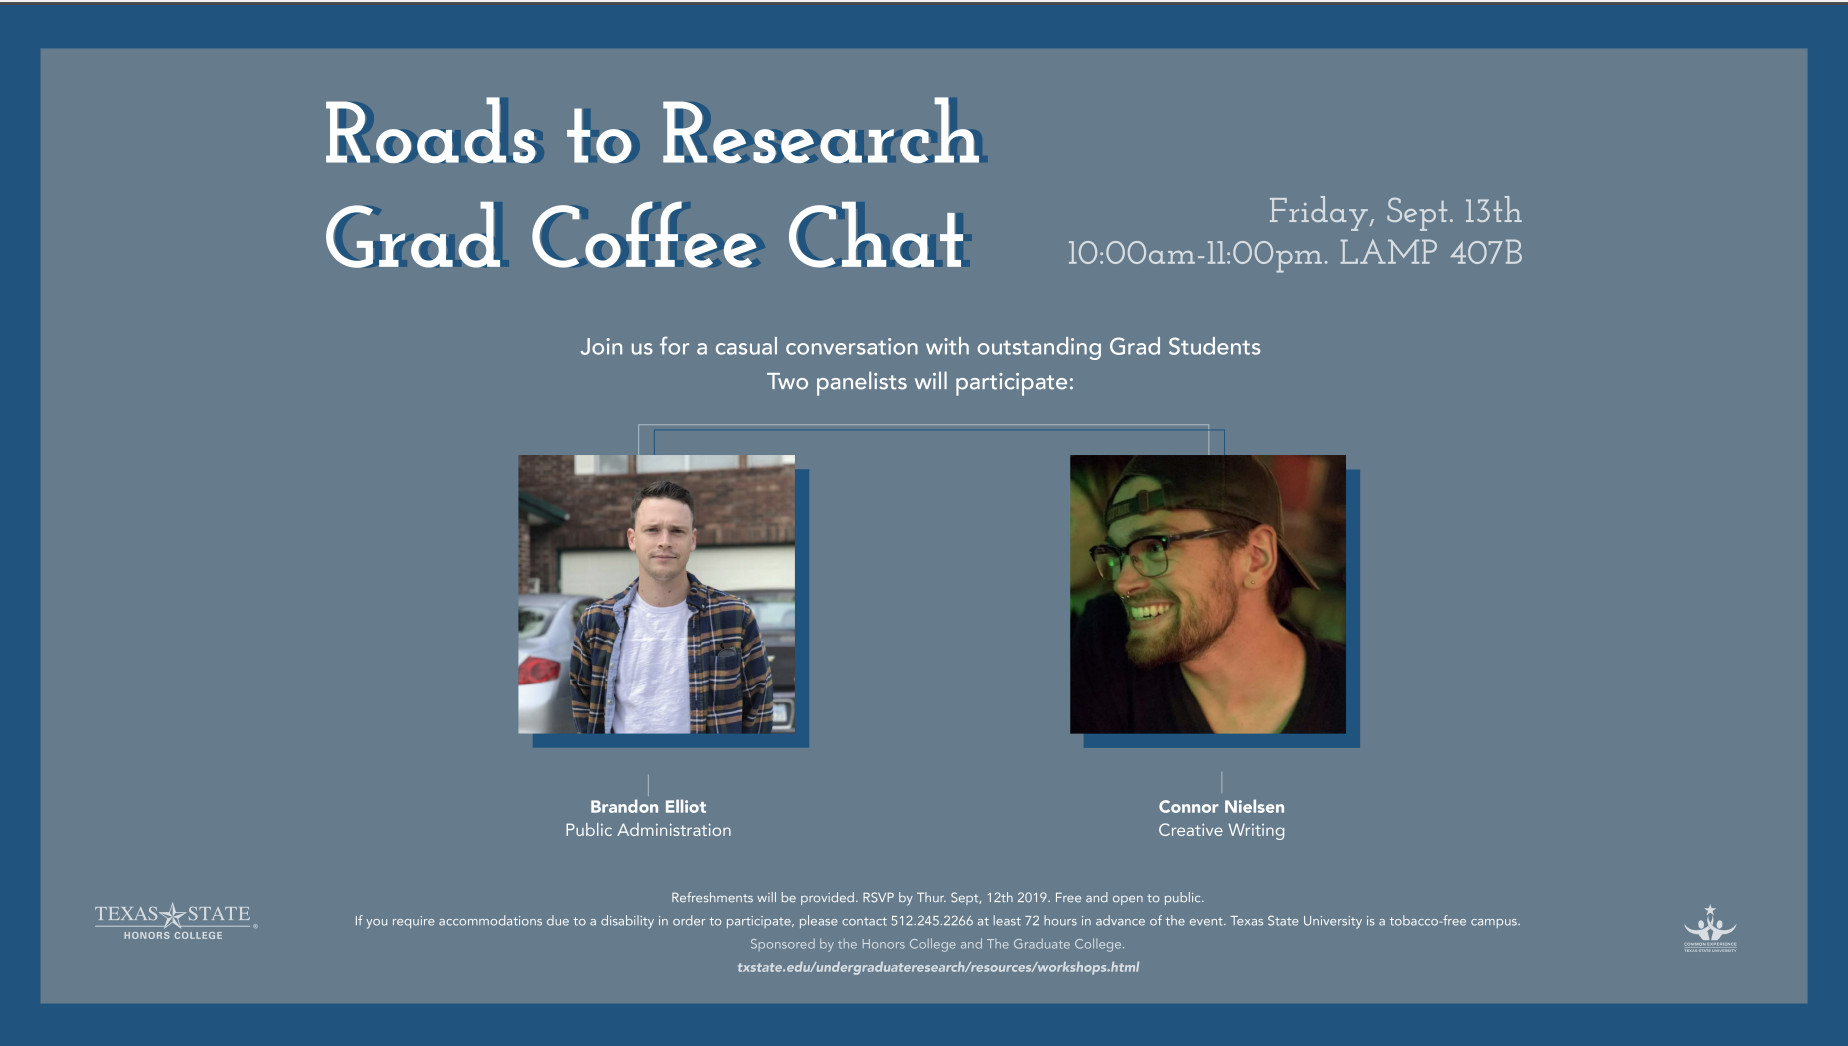 Poster for Grad Student Coffee Event